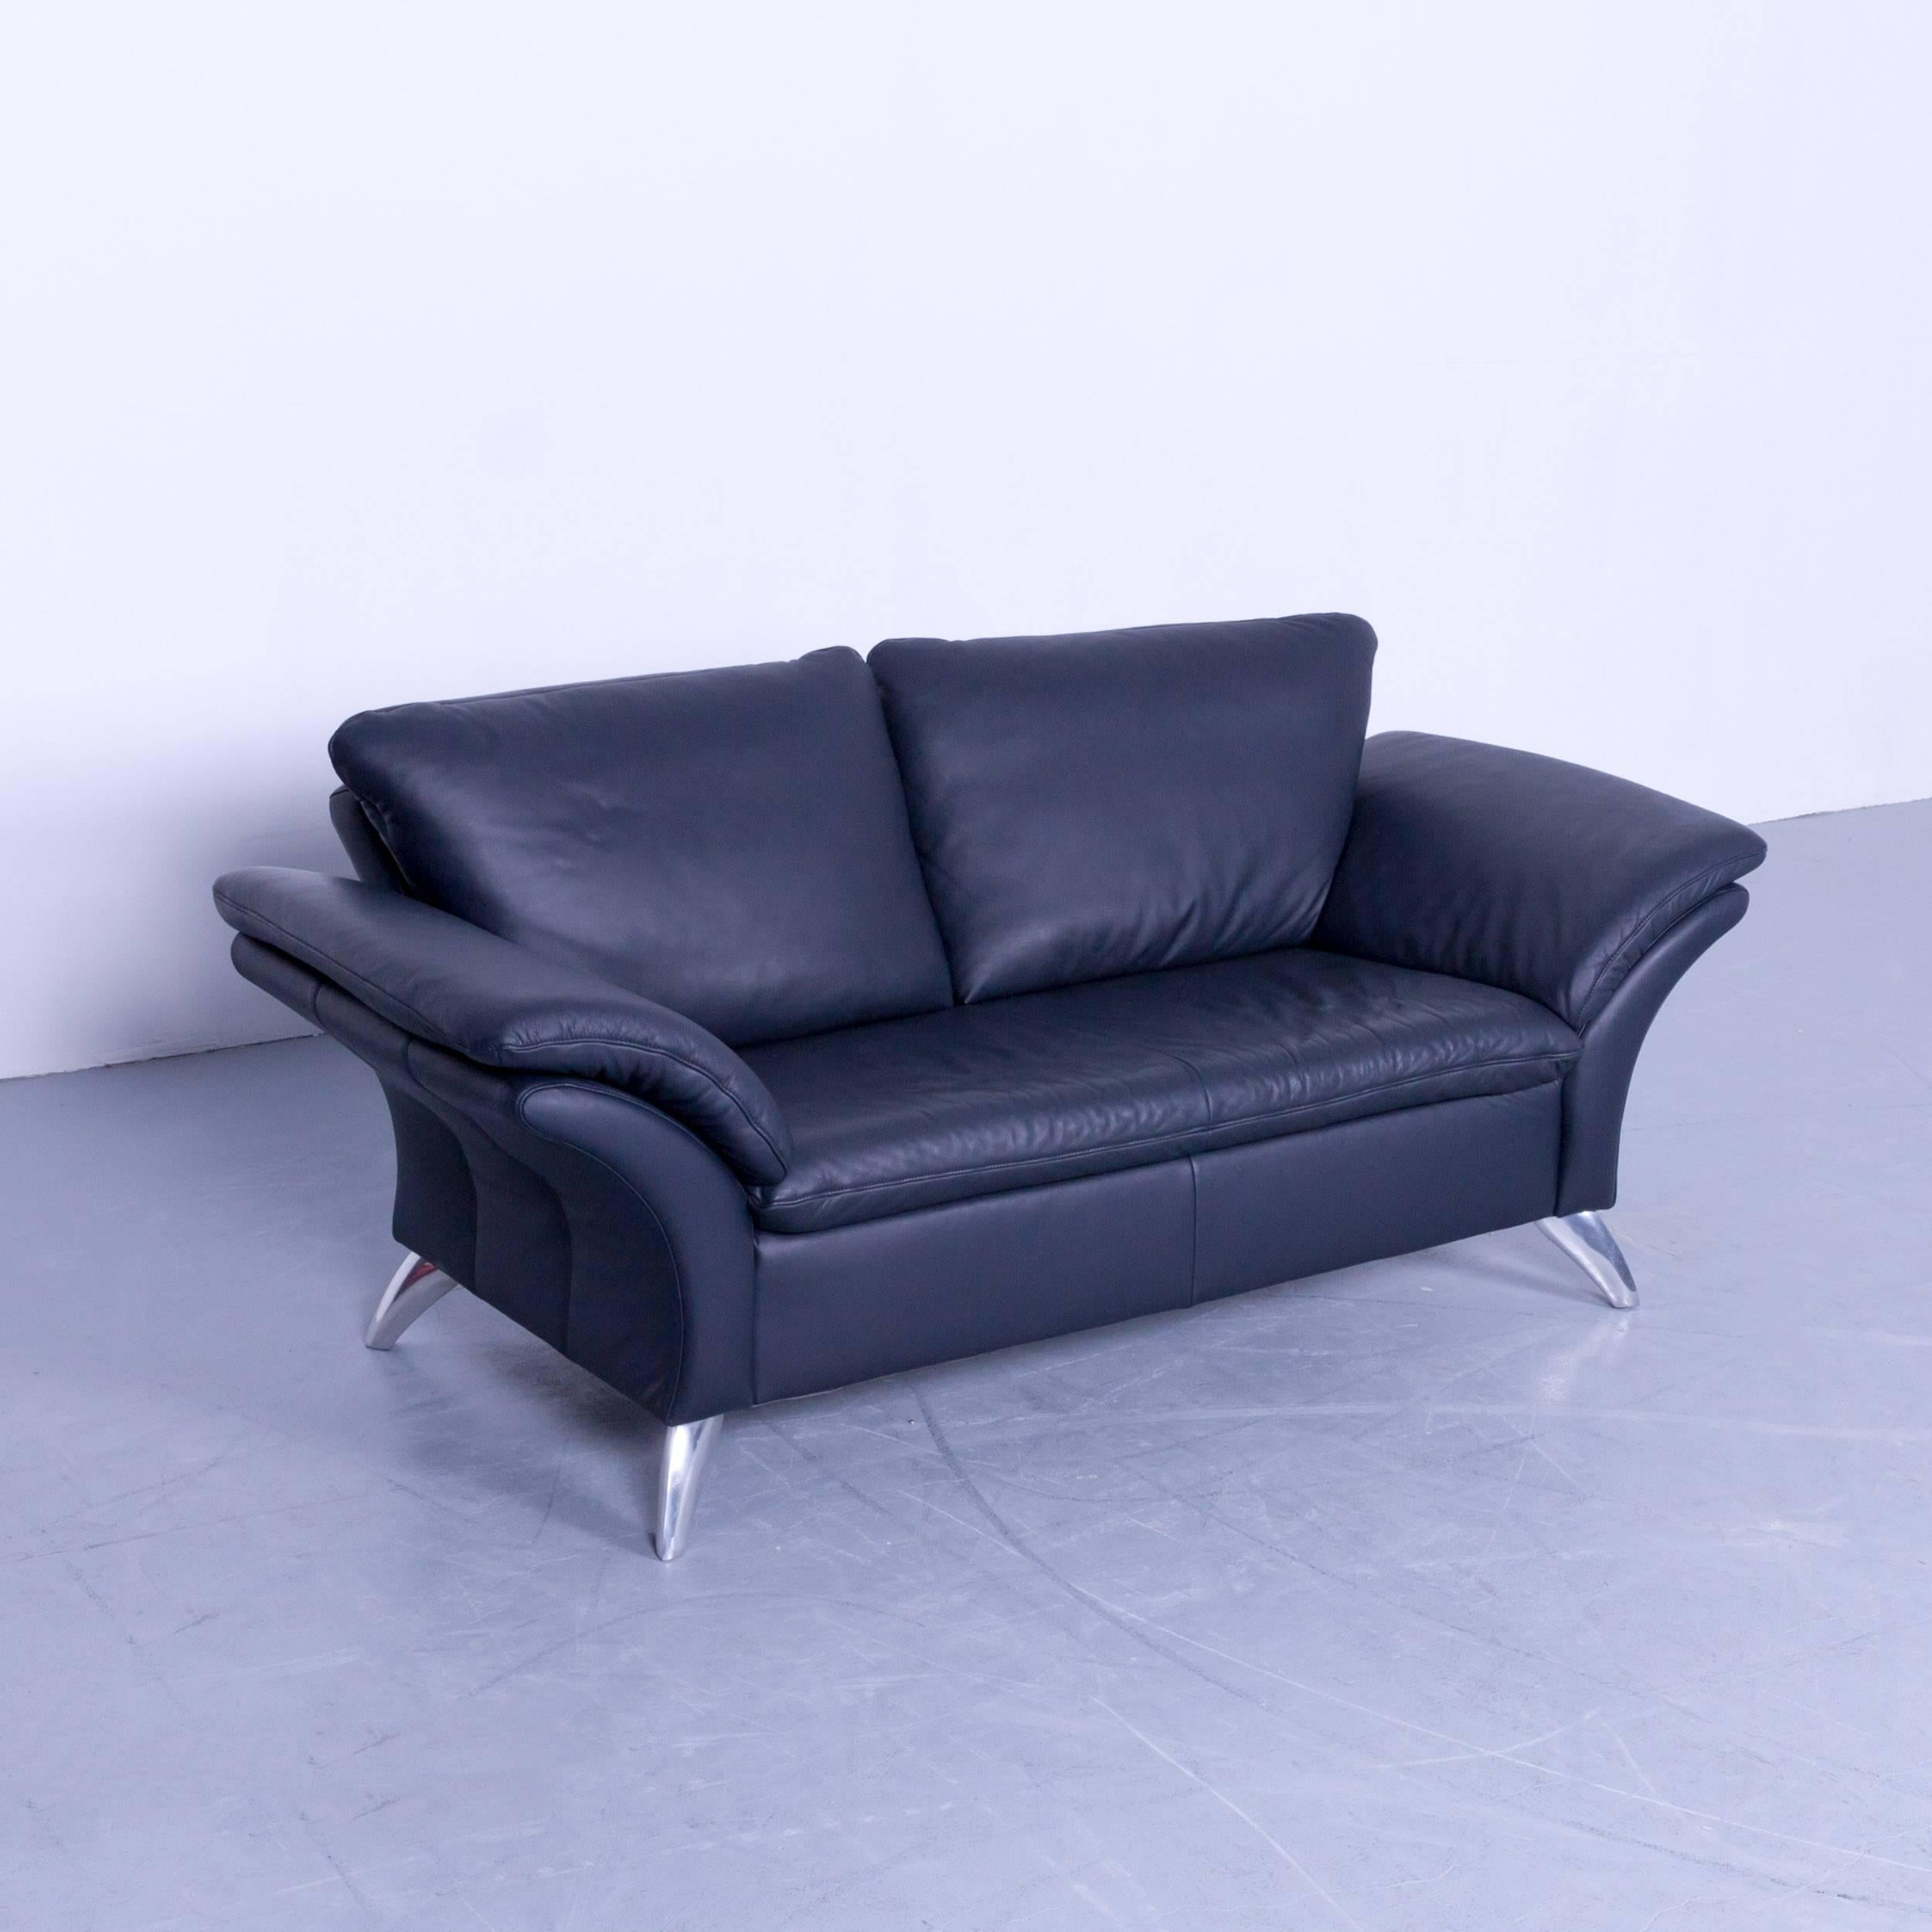 Big Sofa Christian Ecksofa Modern Amazing Ecksofa U Form Fabulous Full Size